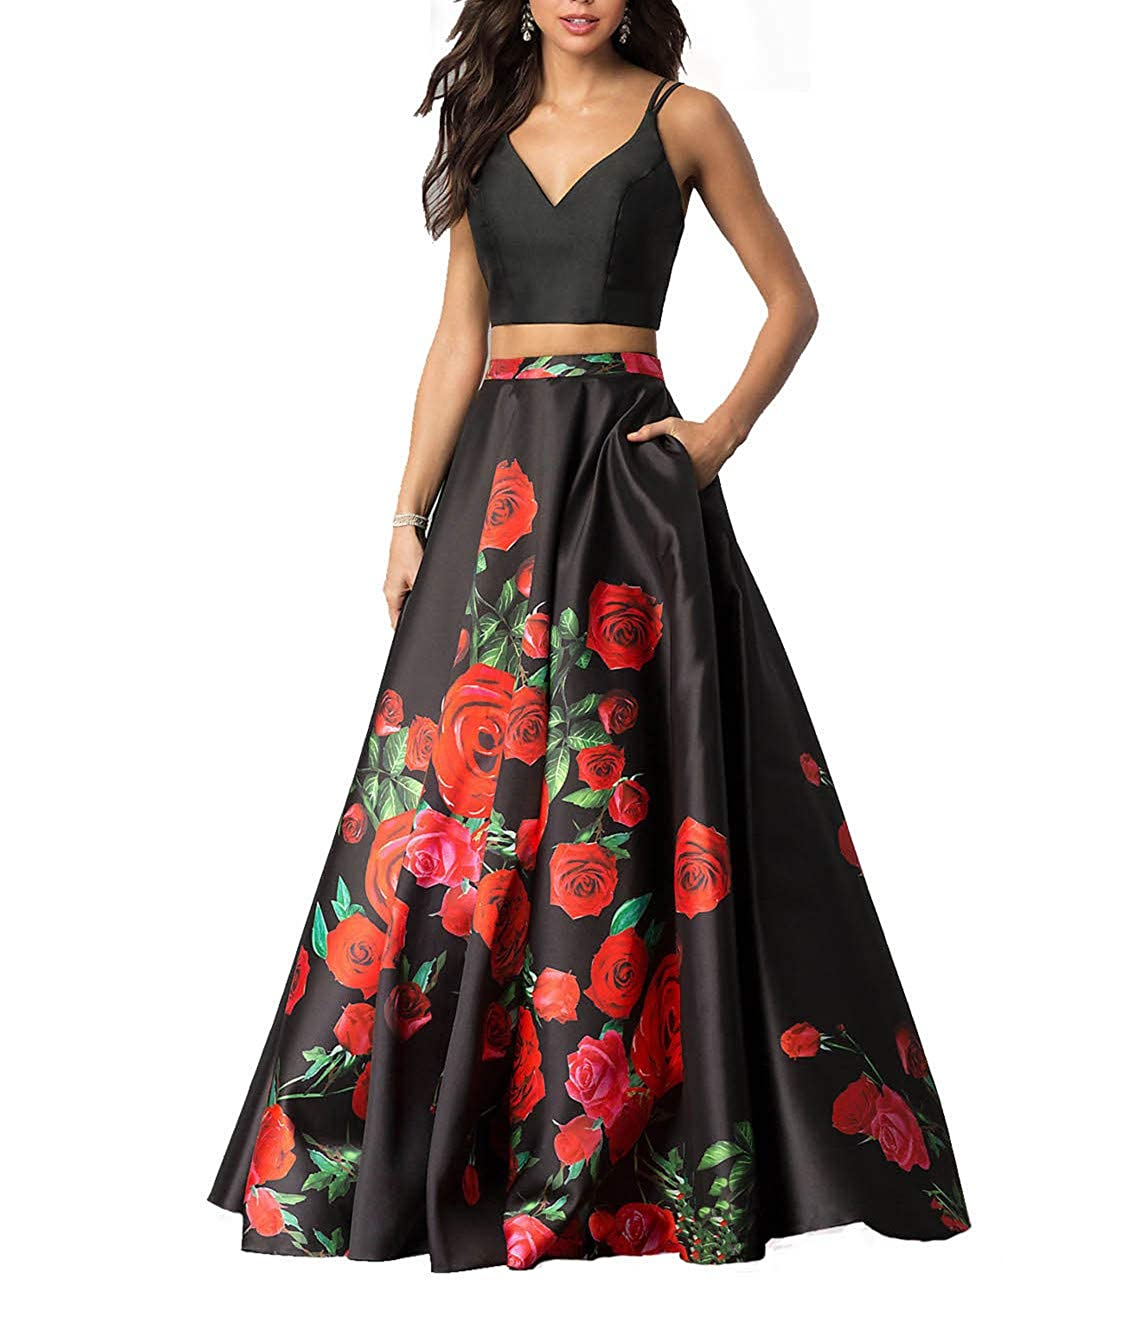 ef262cbc4a8 Momabridal Womens Long 2 Piece Satin Floral Prom Dresses Spaghetti Straps Evening  Party Ball Gowns with Pockets at Amazon Women s Clothing store